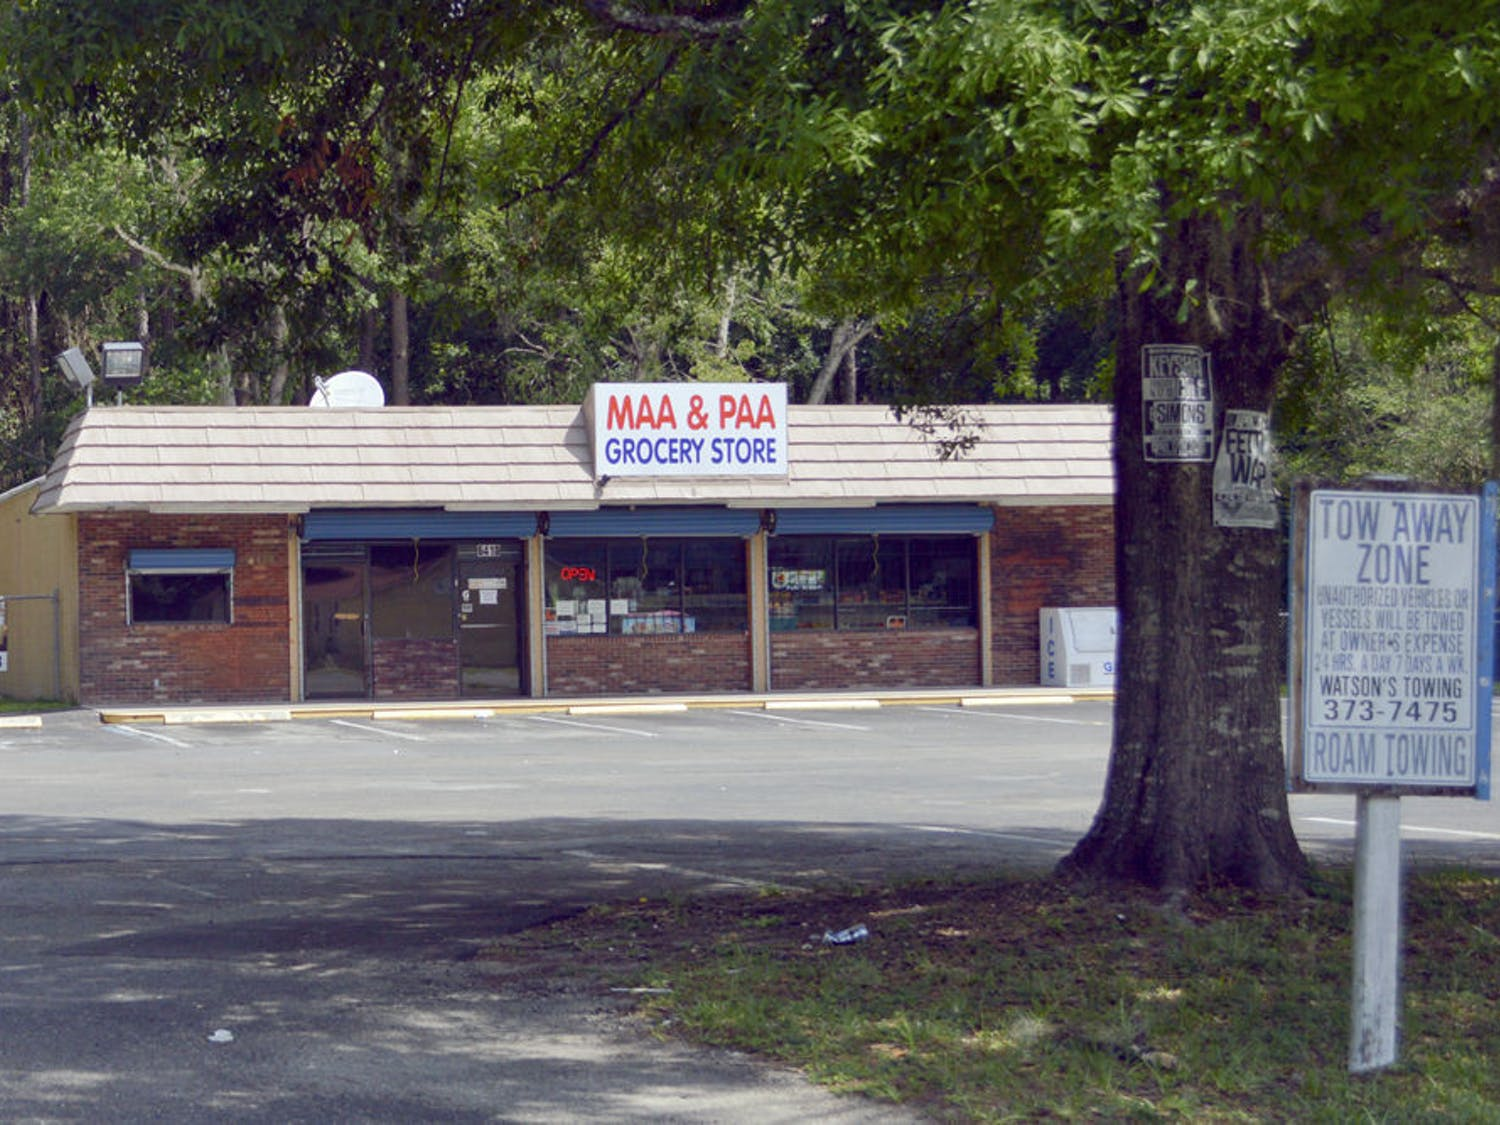 Pictured is the Maa & Paa grocery store, the only source of food located within Linton Oakes. The store supplies basic foods like frozen meat and snacks; the closest grocery store is the Winn-Dixie on Southwest 34th Street.